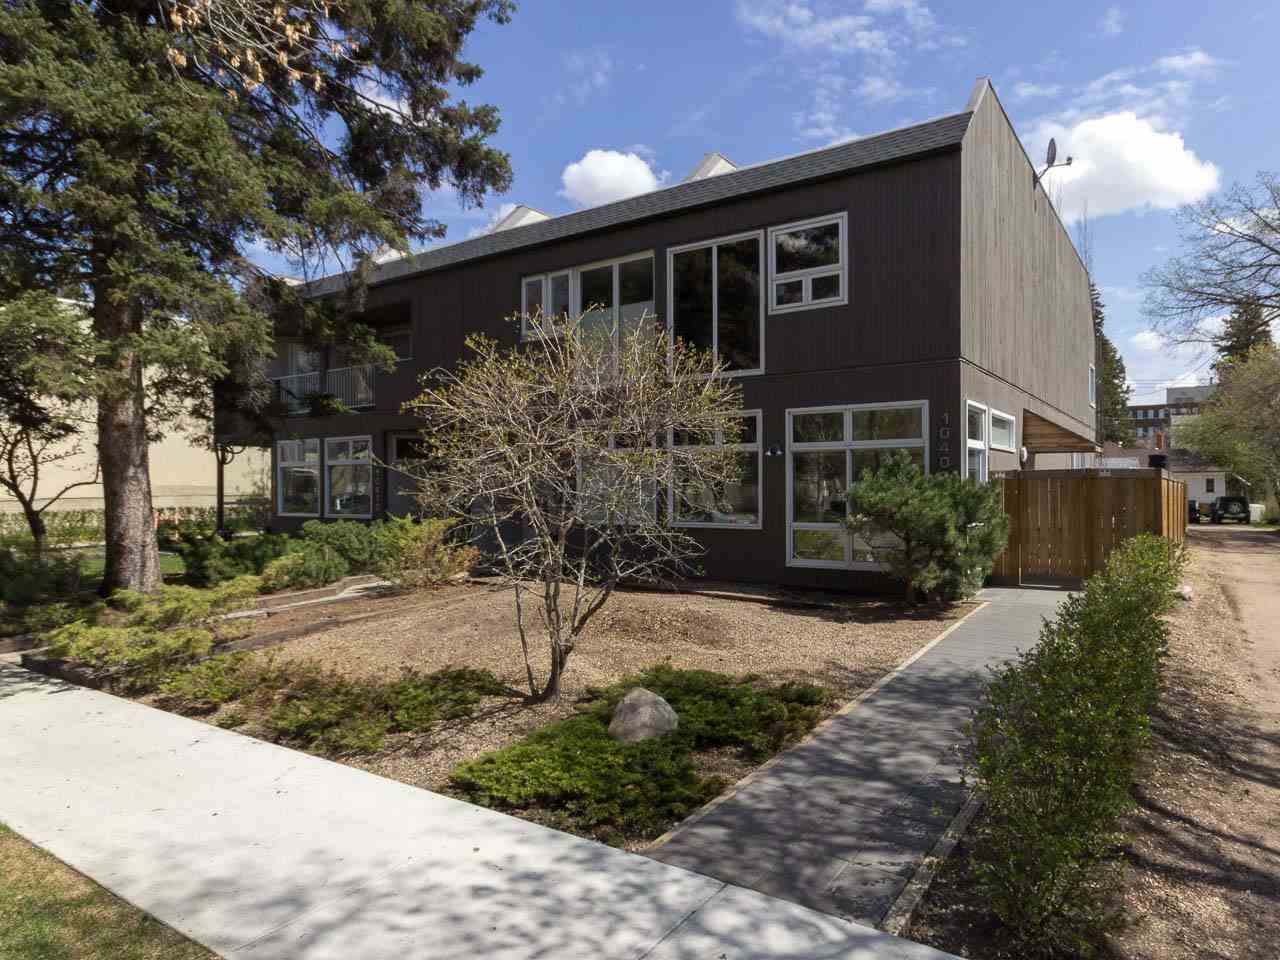 Main Photo: 10409 126 Street in Edmonton: Zone 07 Townhouse for sale : MLS® # E4063453